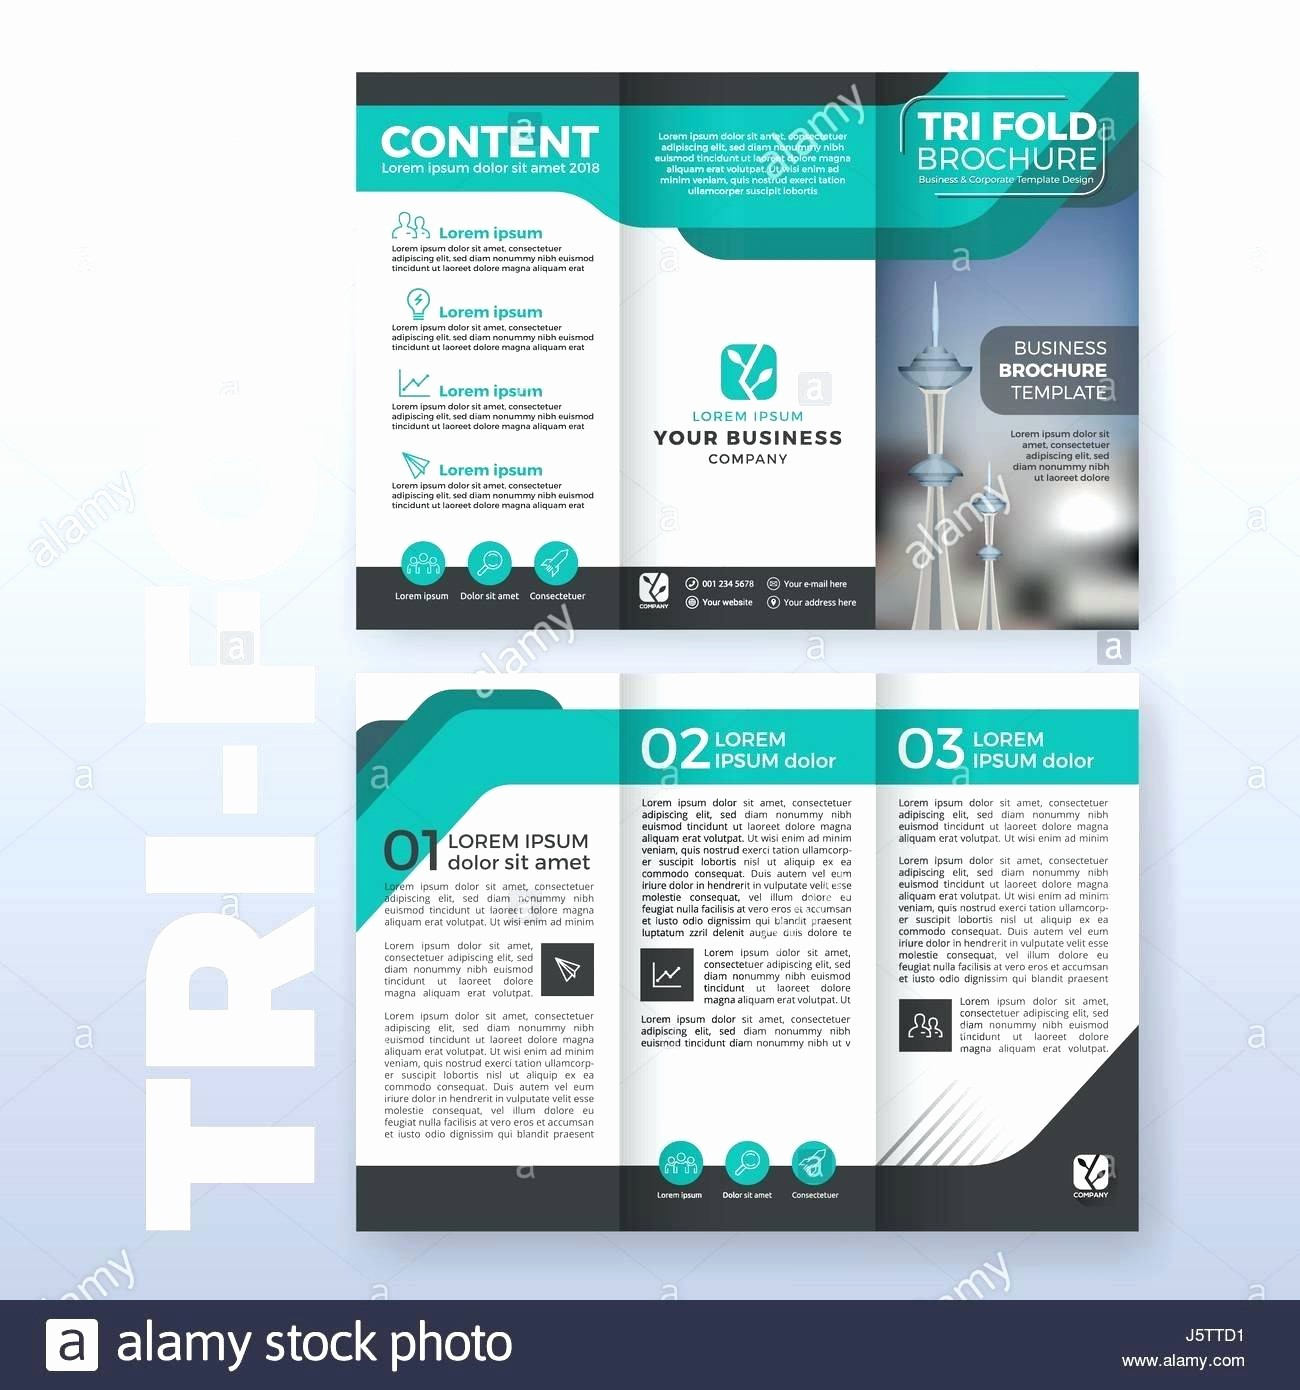 Size Of Tri Fold Brochure Inspirational Legal Size Tri Fold Brochure Template